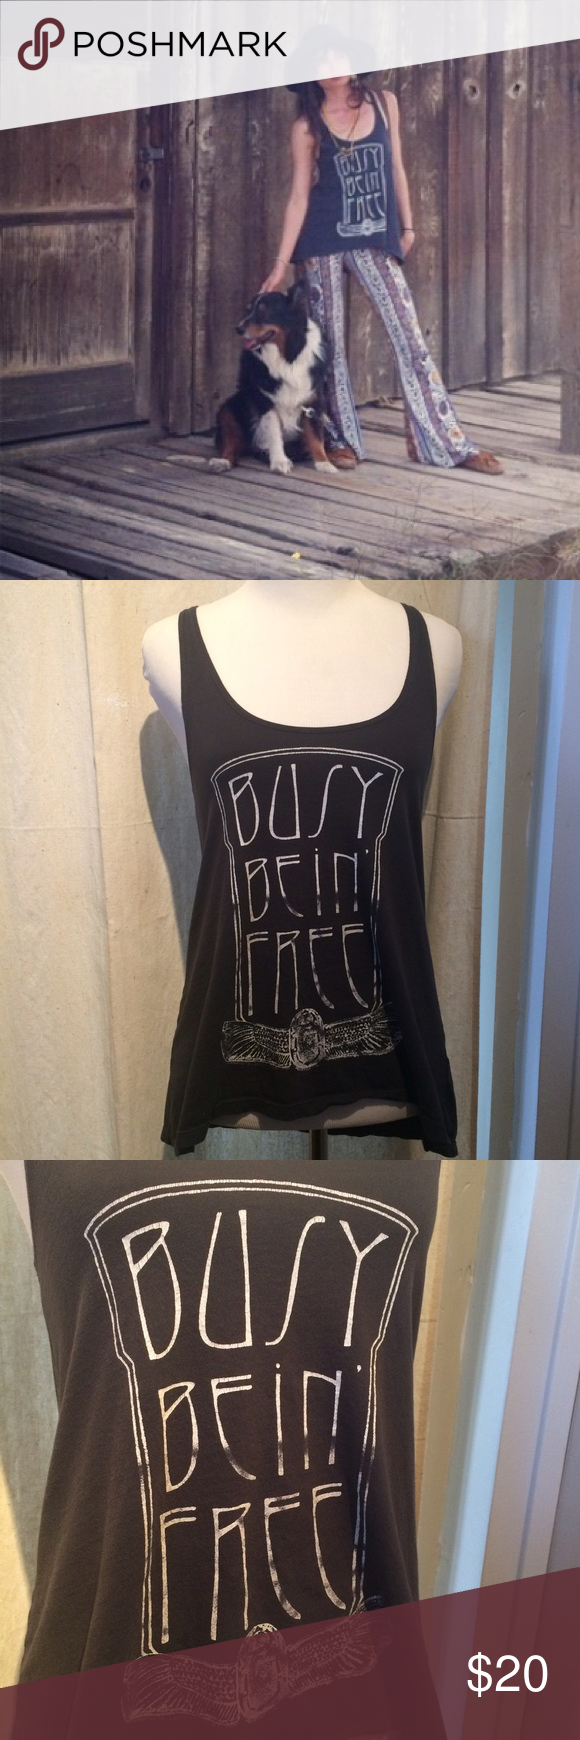 ✌🏼️ Busy Bein Free ✌🏼️ Idyllwild brand tank Super cute! 100% cotton, so soft! Brand is Idylwild, marked Bandit Brand (similar!) since Idylwild is a small brand. Bandit Brand Tops Tank Tops